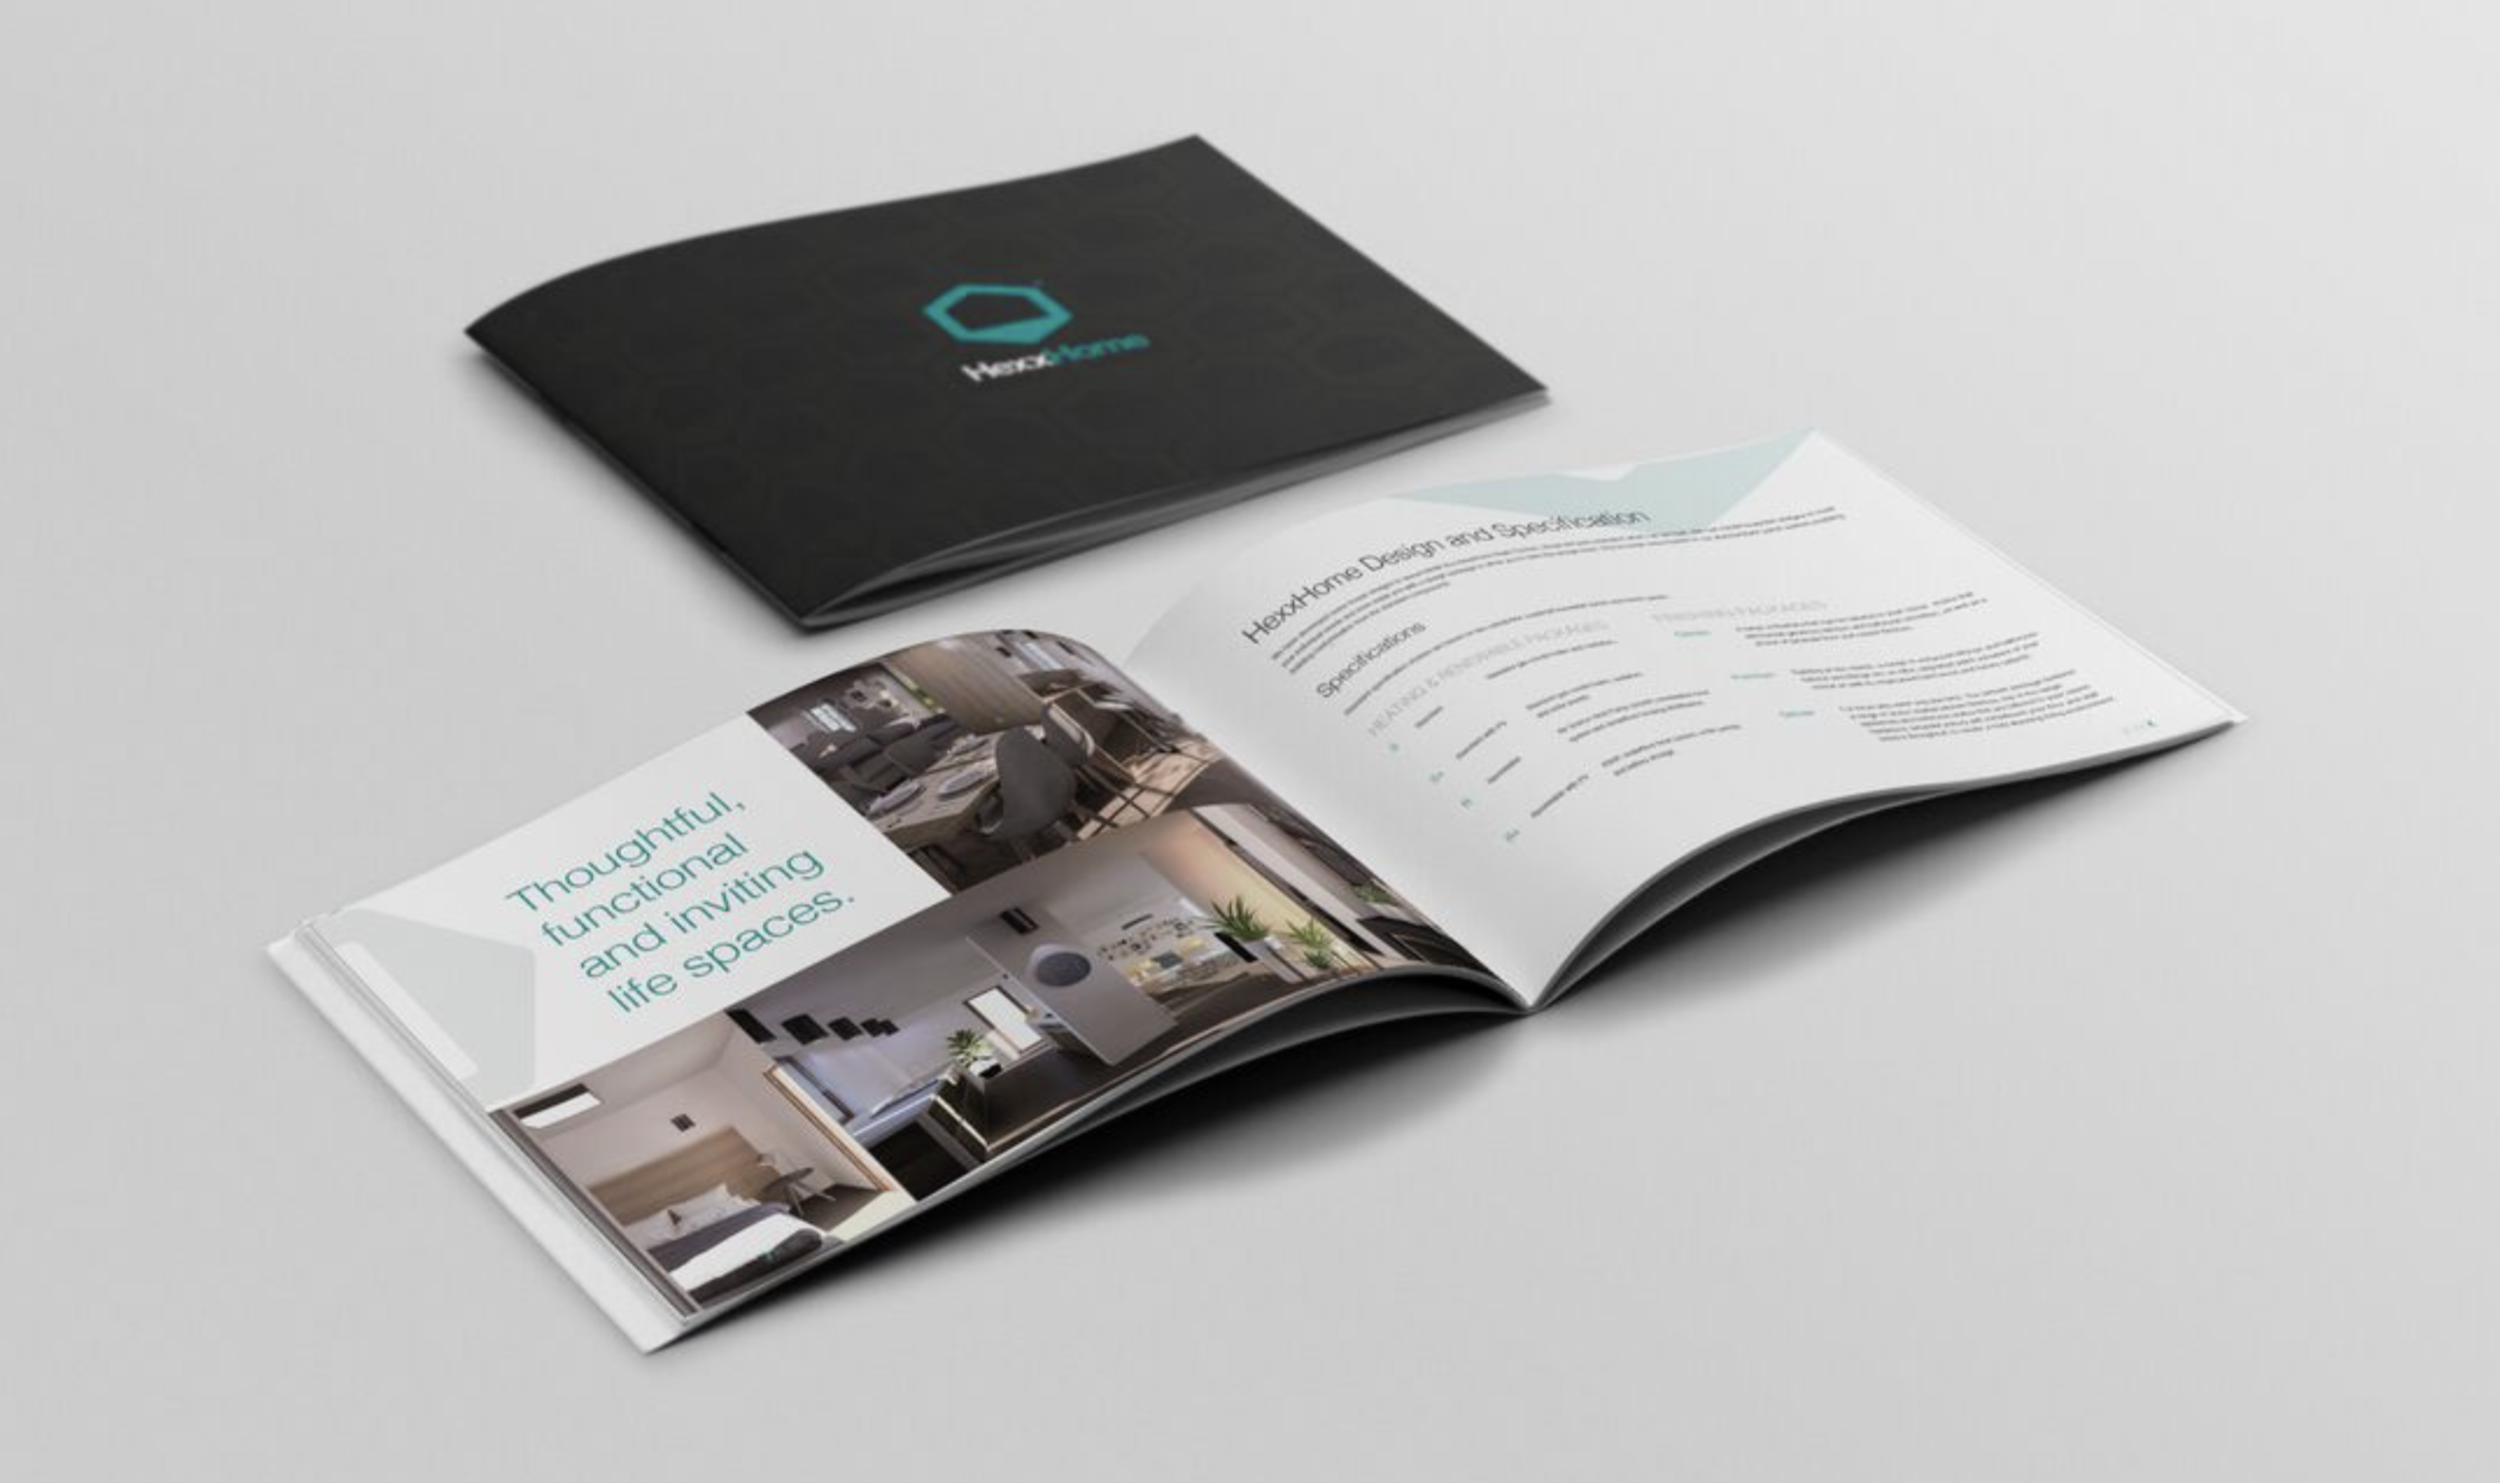 Instilling Credibility & Trust - As a subsidiary of The Garenne Group, the largest construction group in The Channel Islands, we mirrored the same colour scheme to bring credibility and recognition to the new start-up brand. Working closely, we developed a brand that was warm and approachable, complimented with a clean and bold identity.